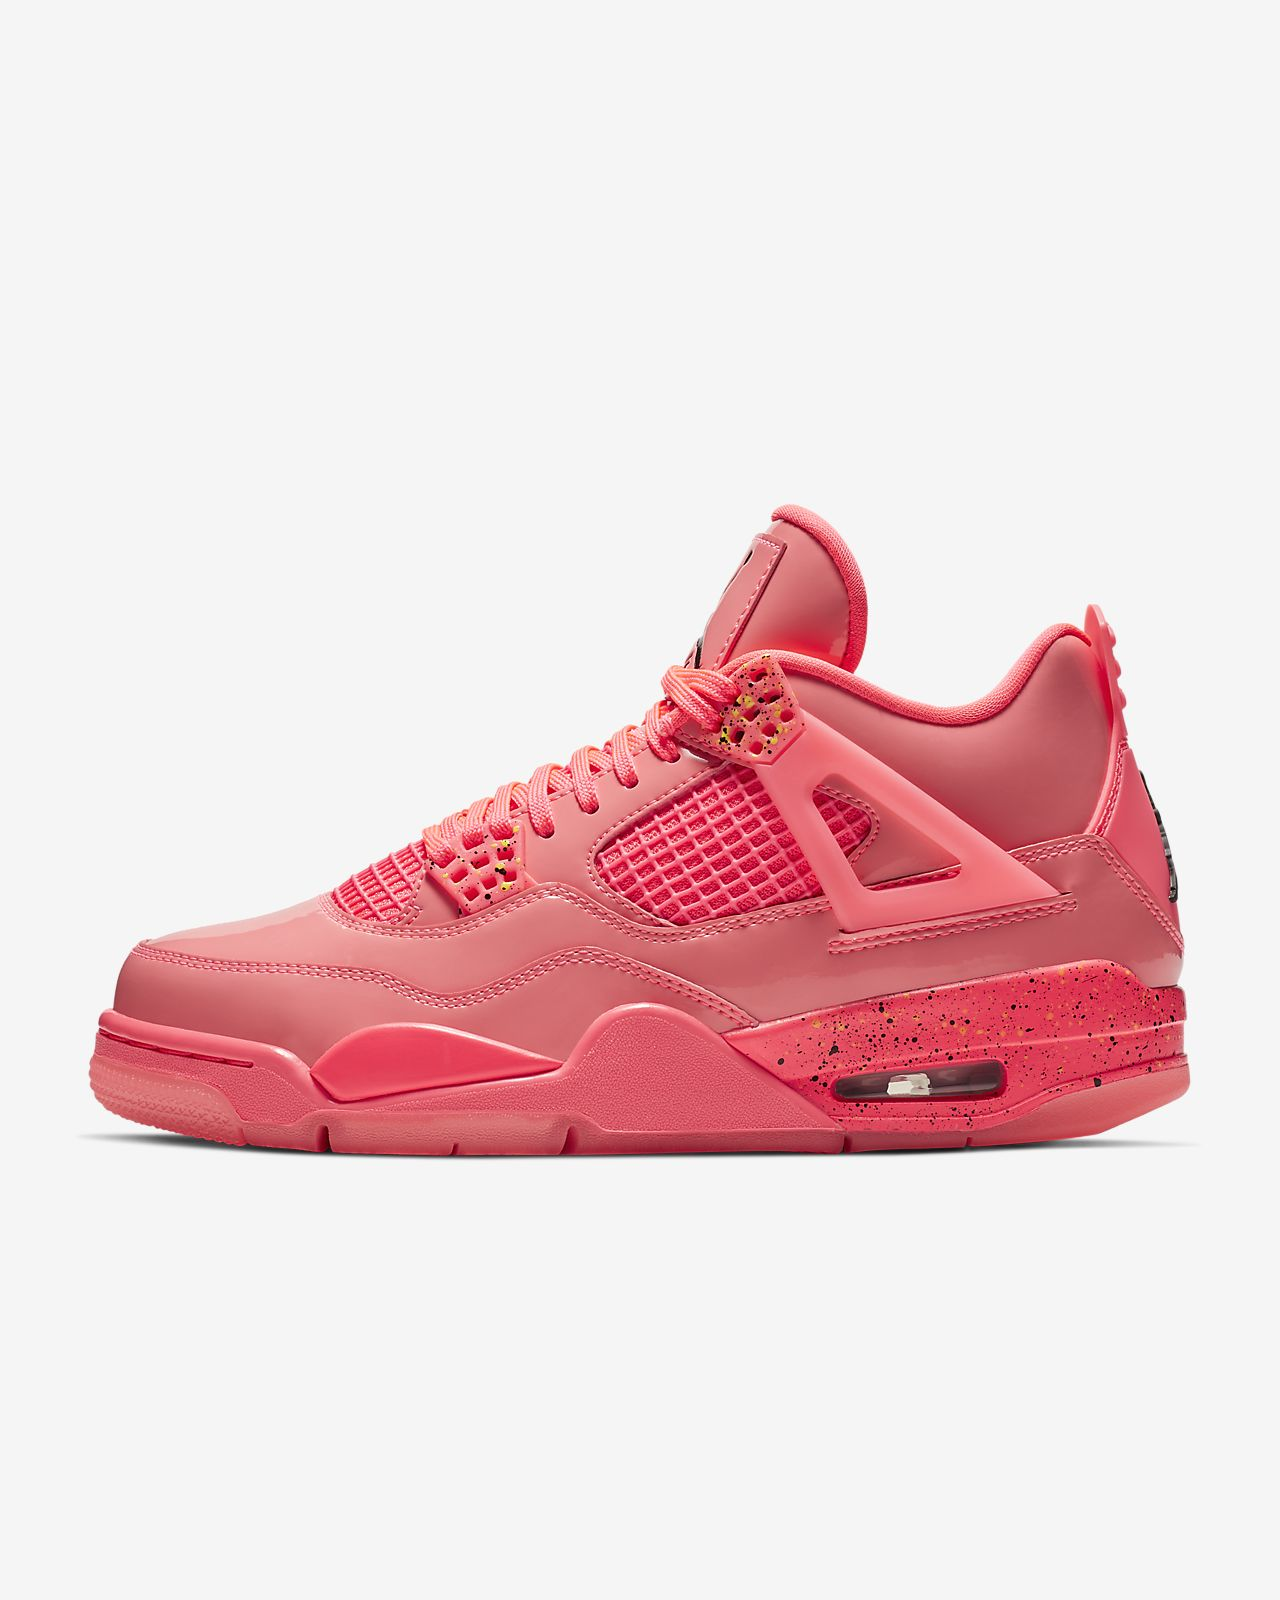 buy online d3287 3ce33 Air Jordan 4 Retro NRG Women's Shoe